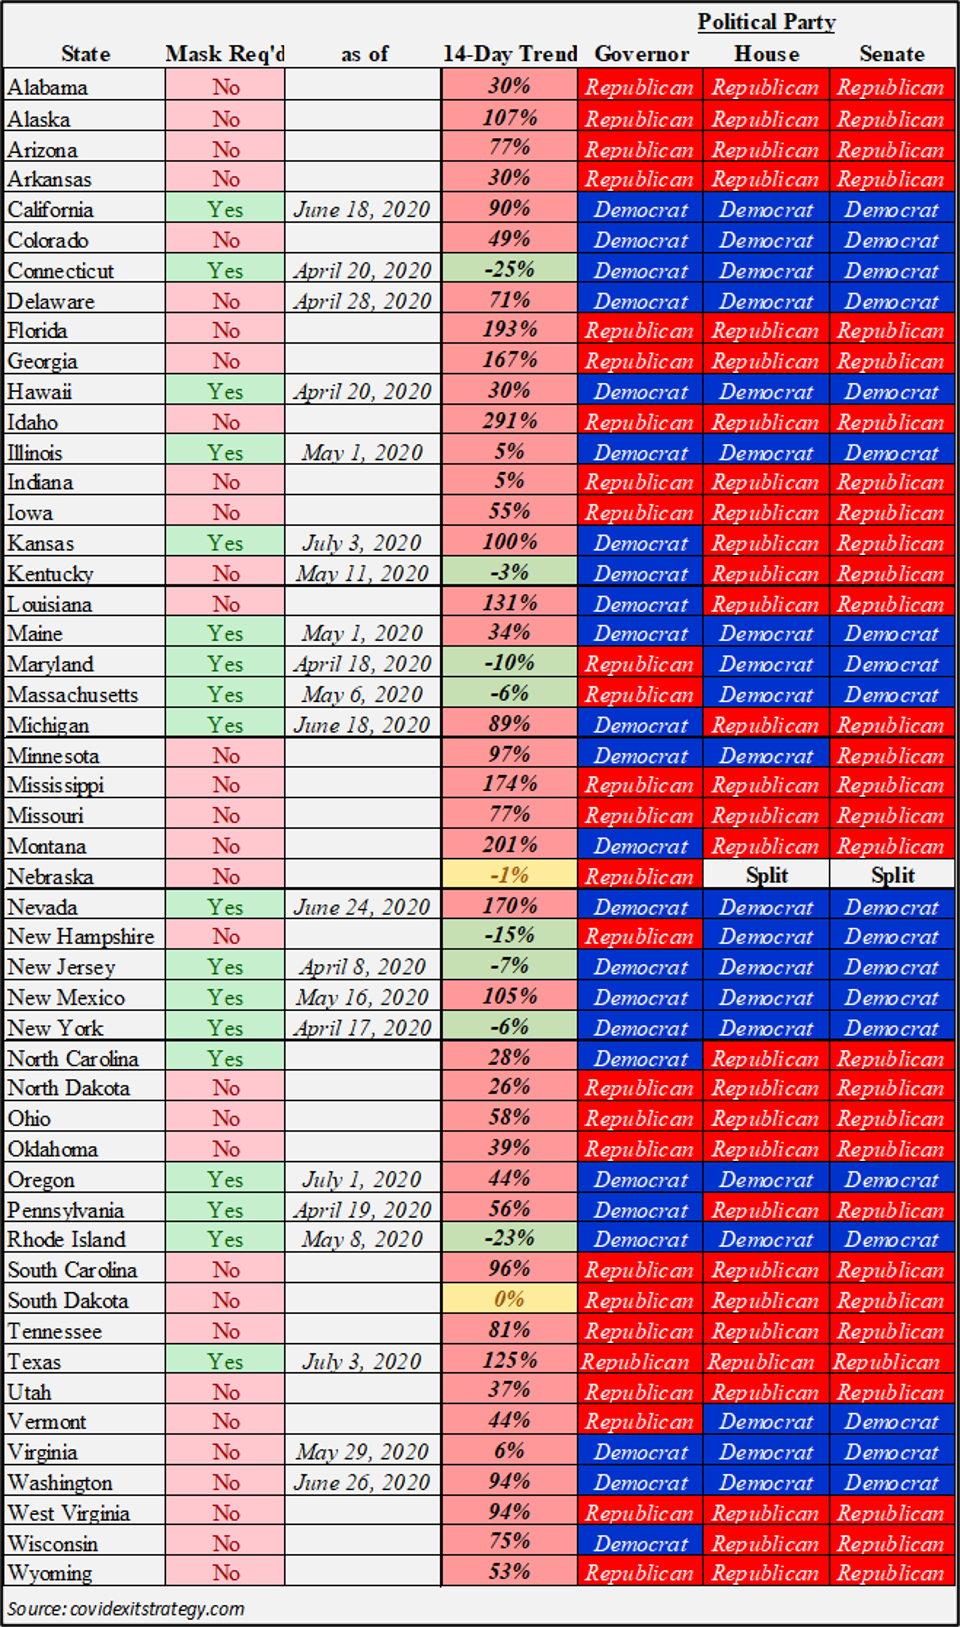 Covid 19 Data - State by State